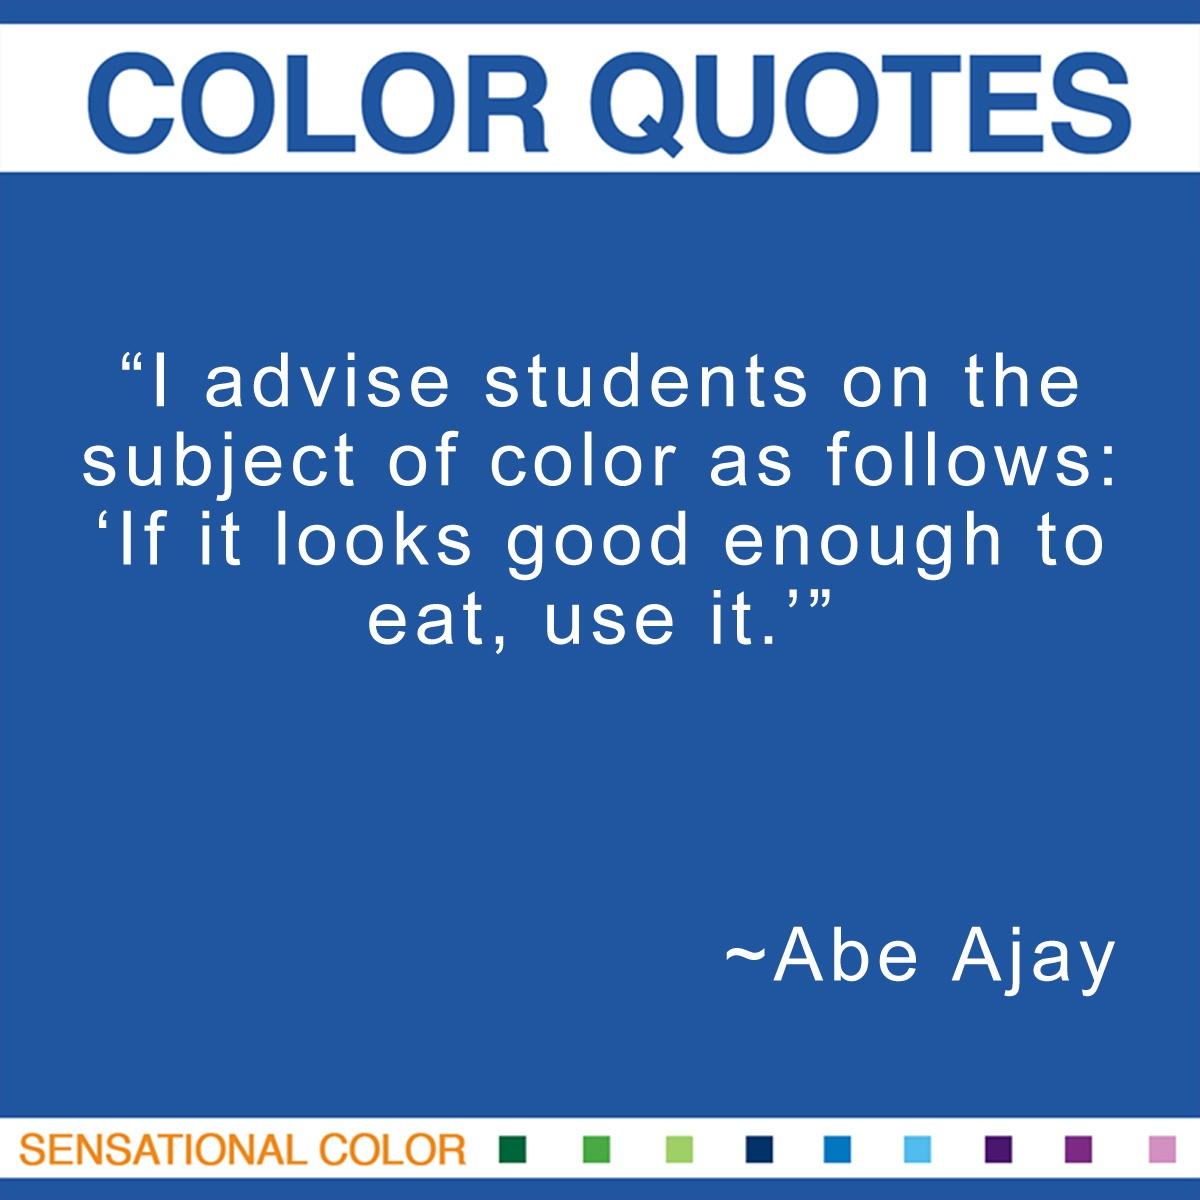 """I advise students on the subject of color as follows: 'If it looks good enough to eat, use it.'"" - Abe Ajay"